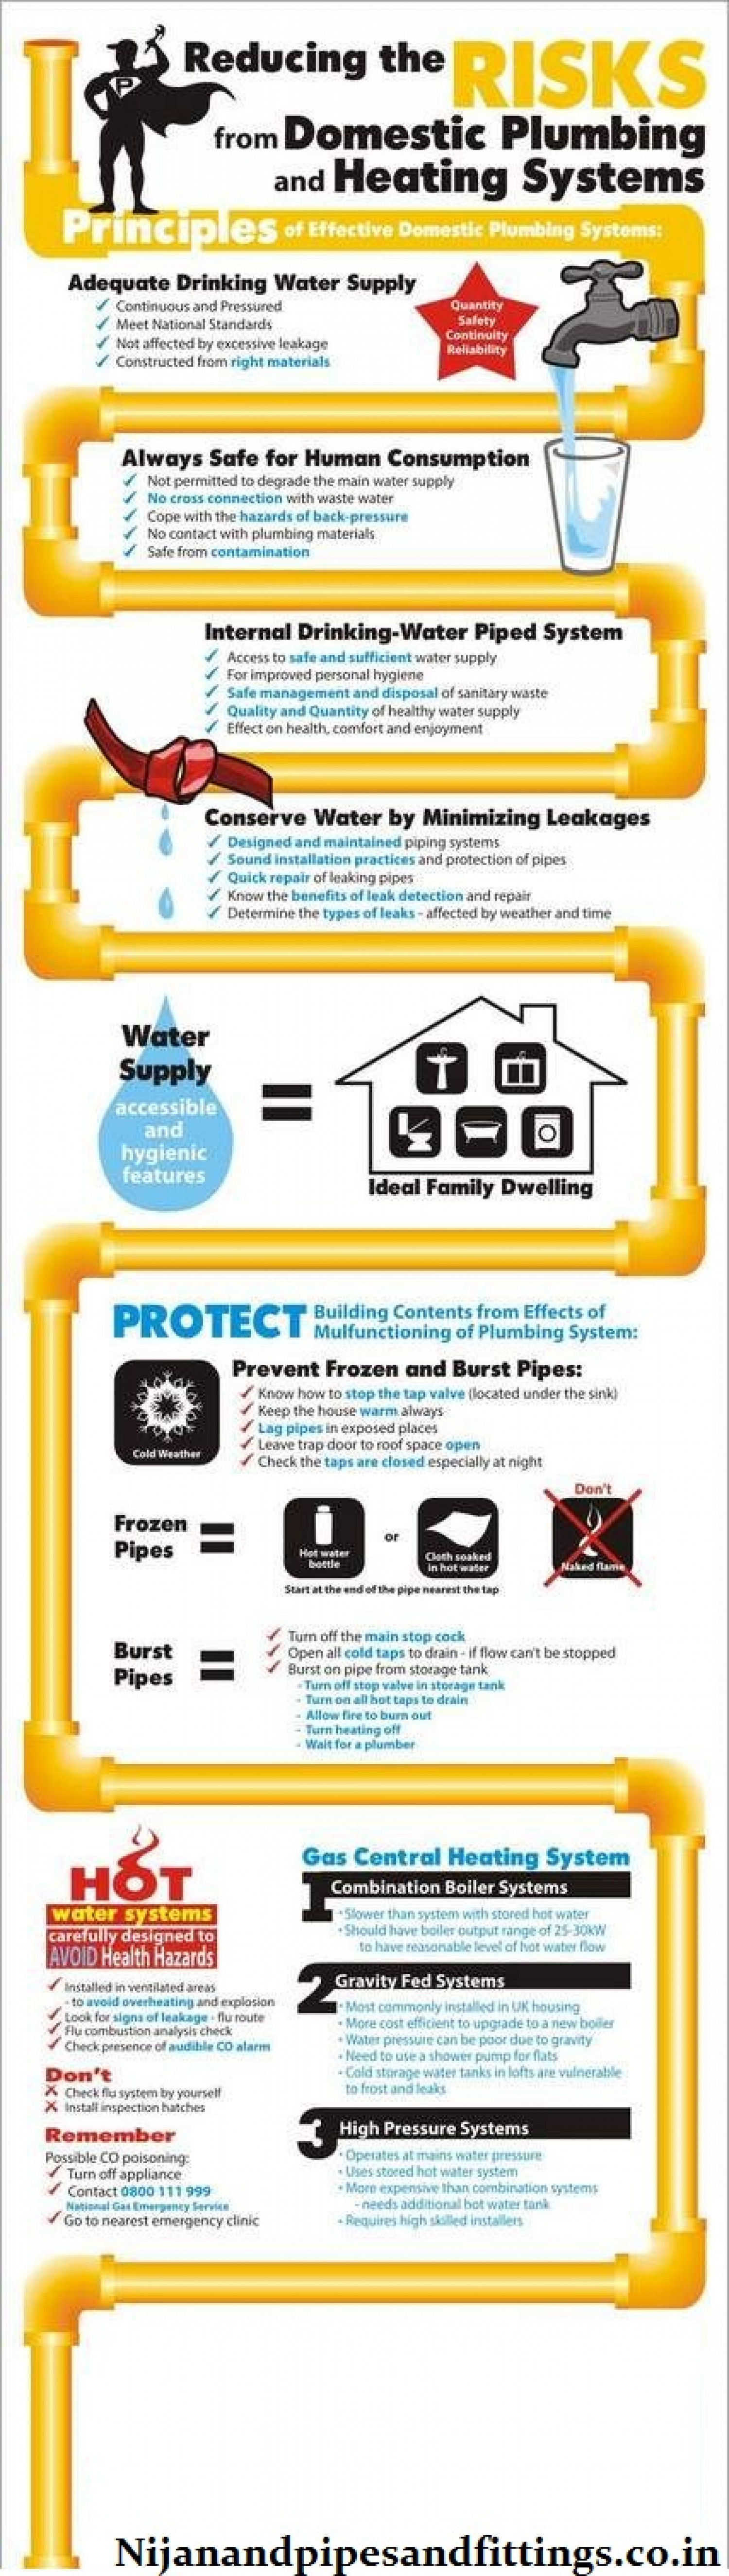 Reducing The Risk From Domestic Plumbing and Heating Systems Infographic